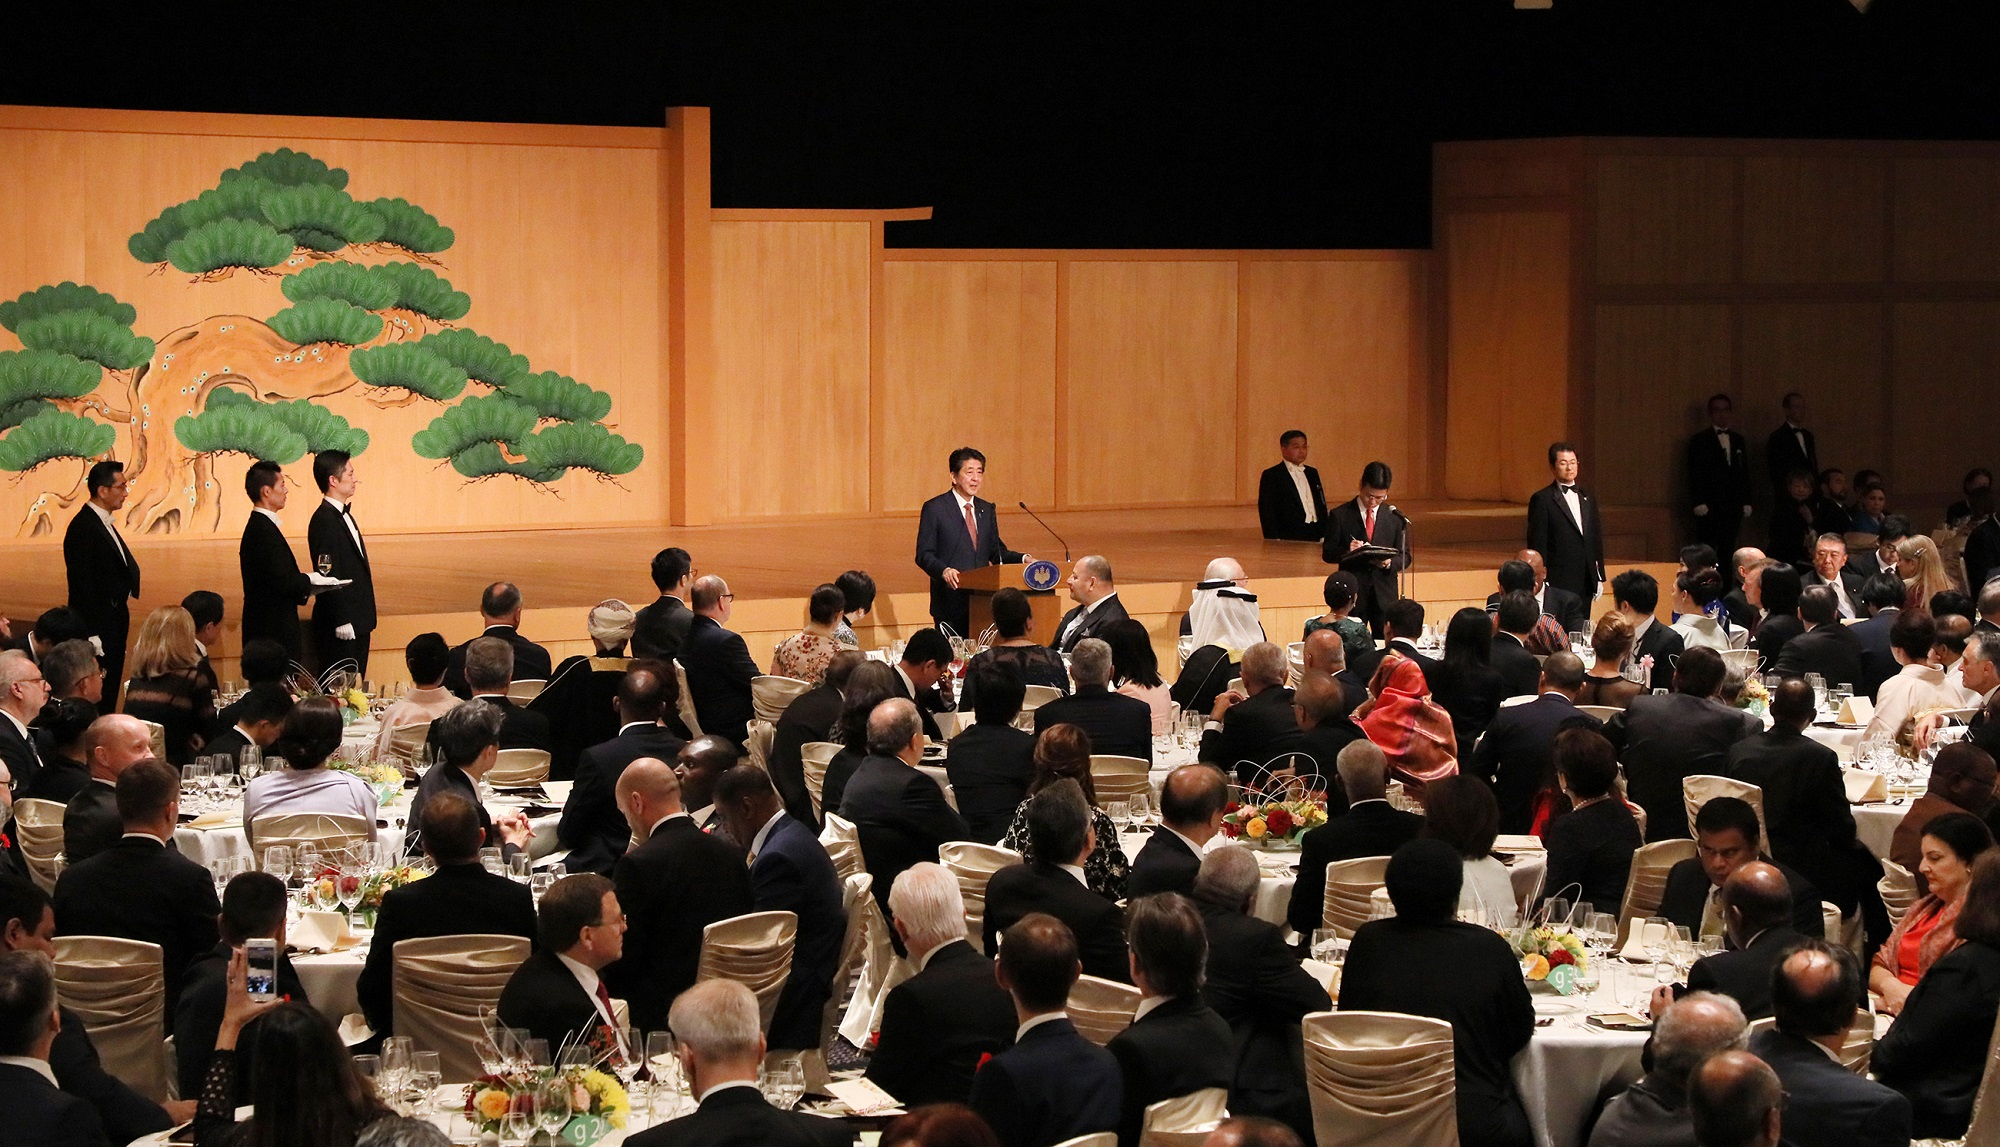 Photograph of the Prime Minister delivering an address at the Naikaku-Soridaijin-Fusai-Shusai-Bansankai (banquet hosted by the Prime Minister and his spouse) (2)